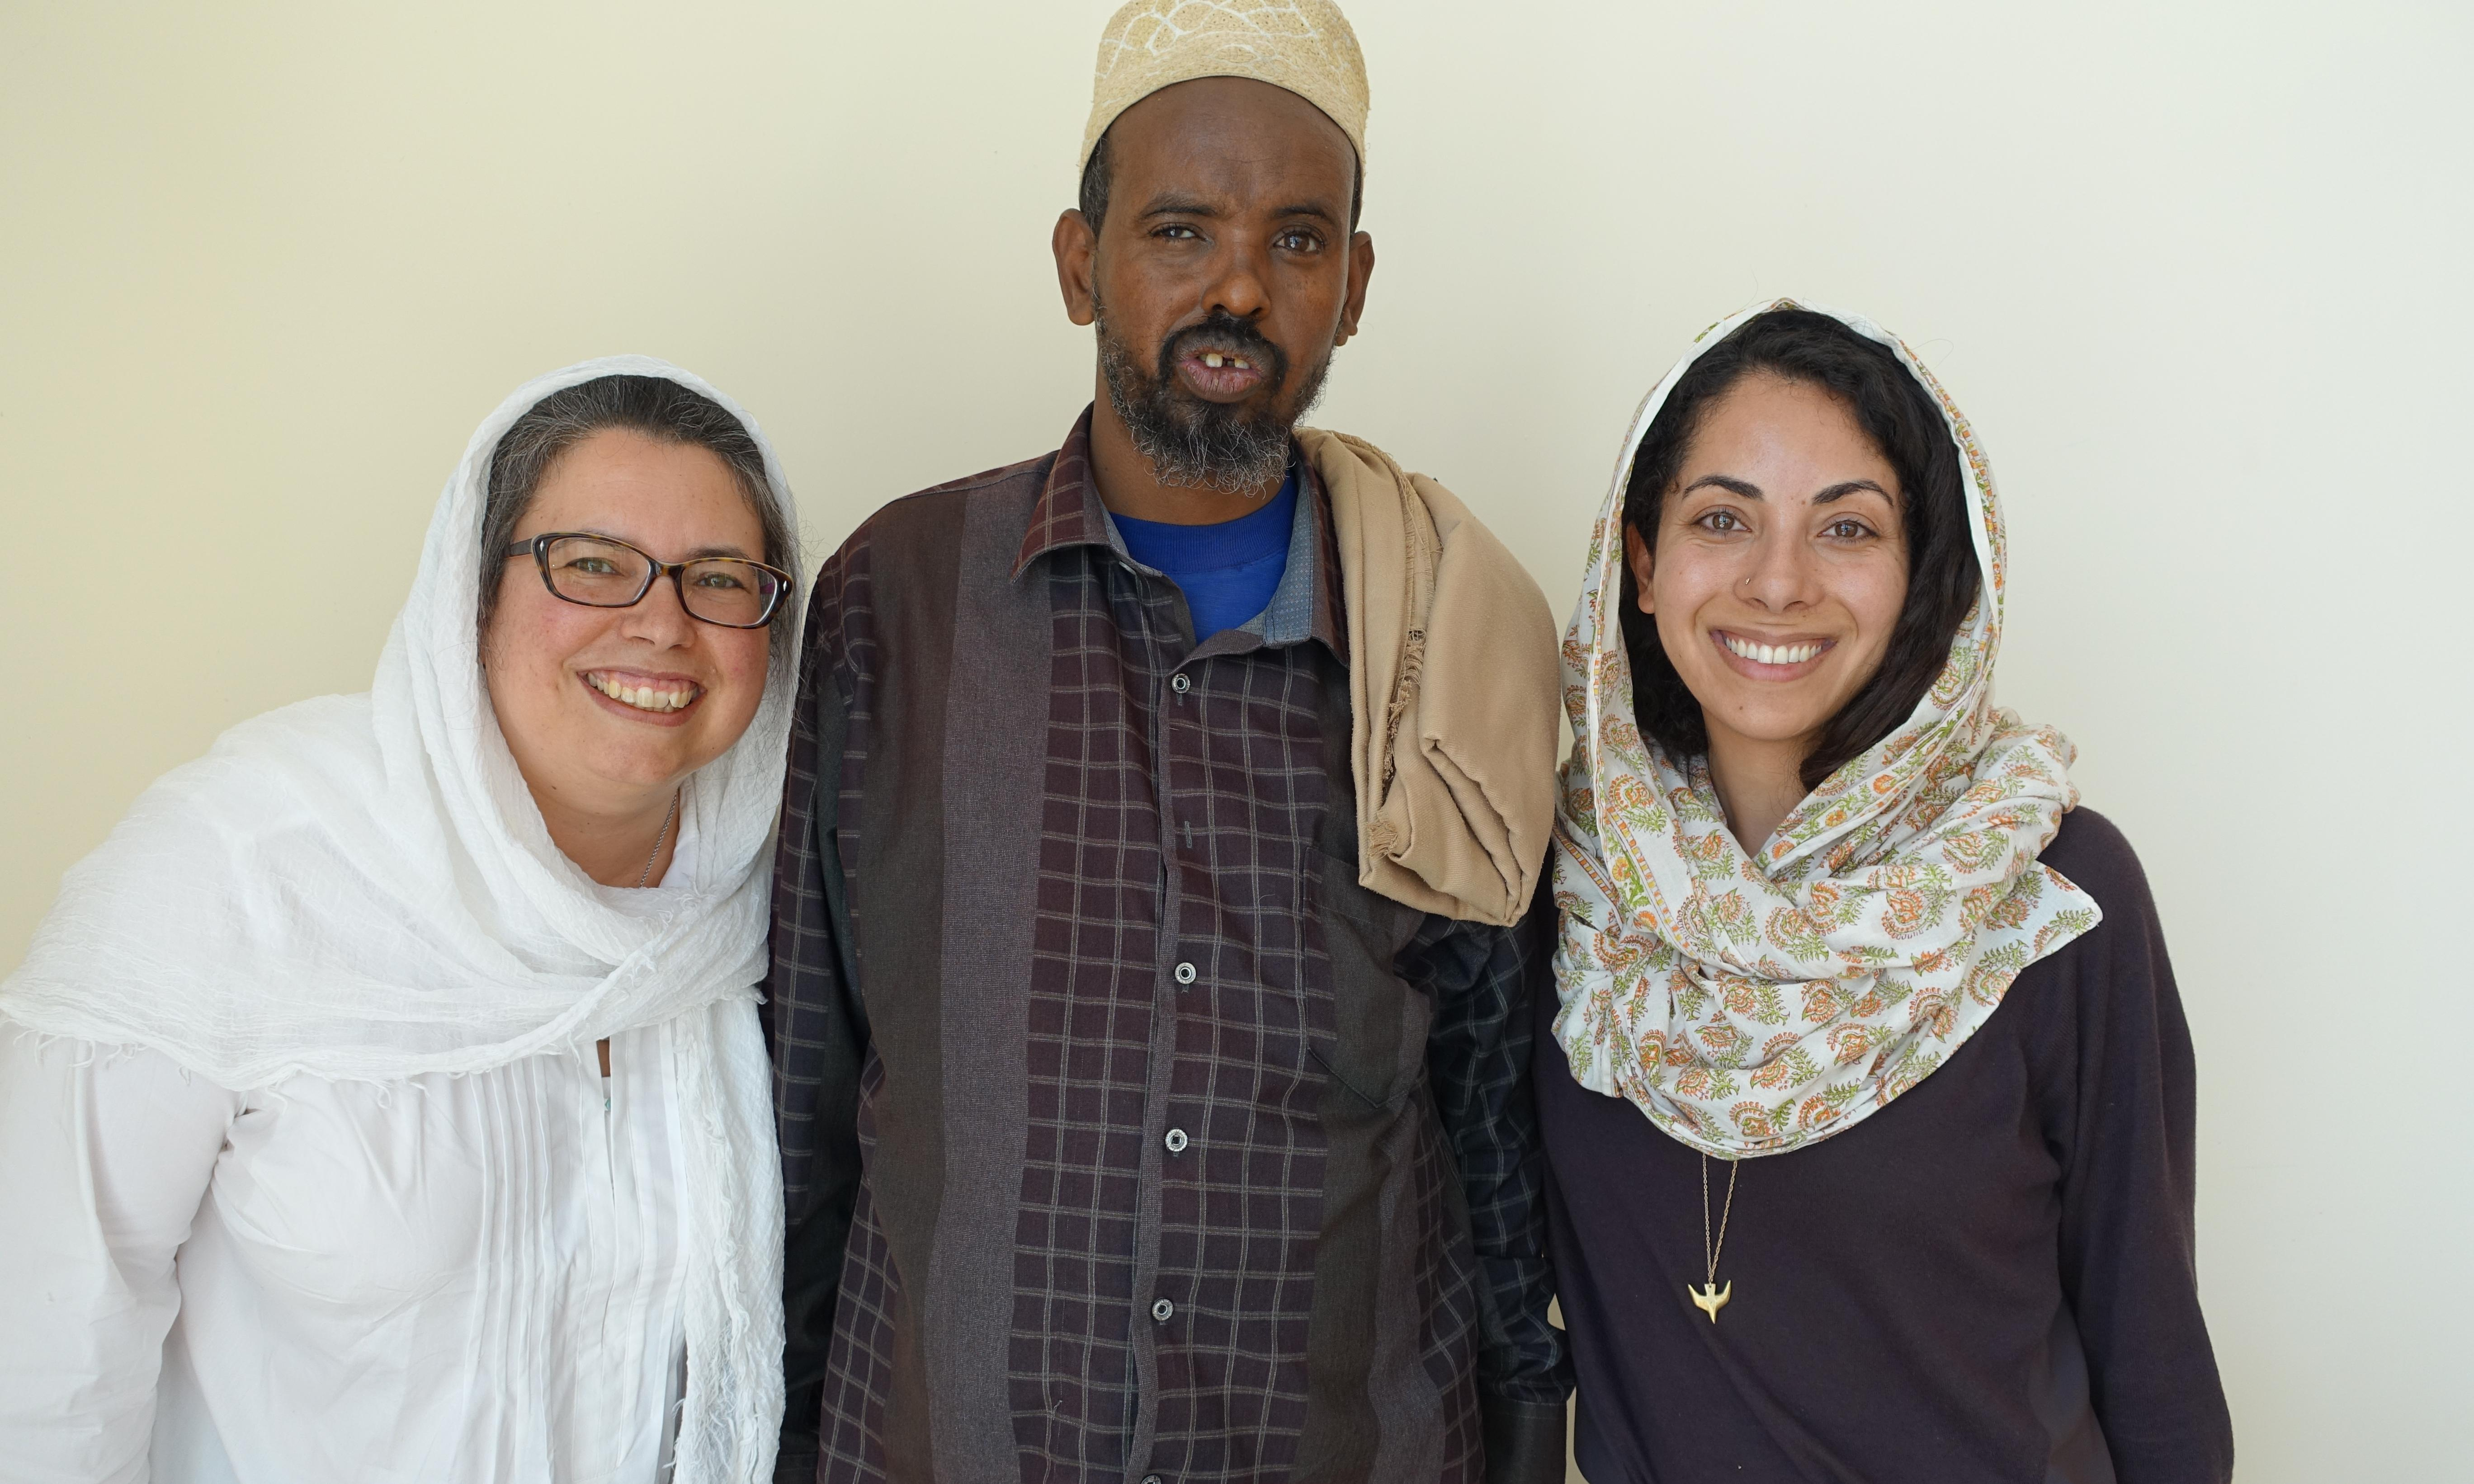 Somali villager travels to US to confront army chief he says tried to kill him